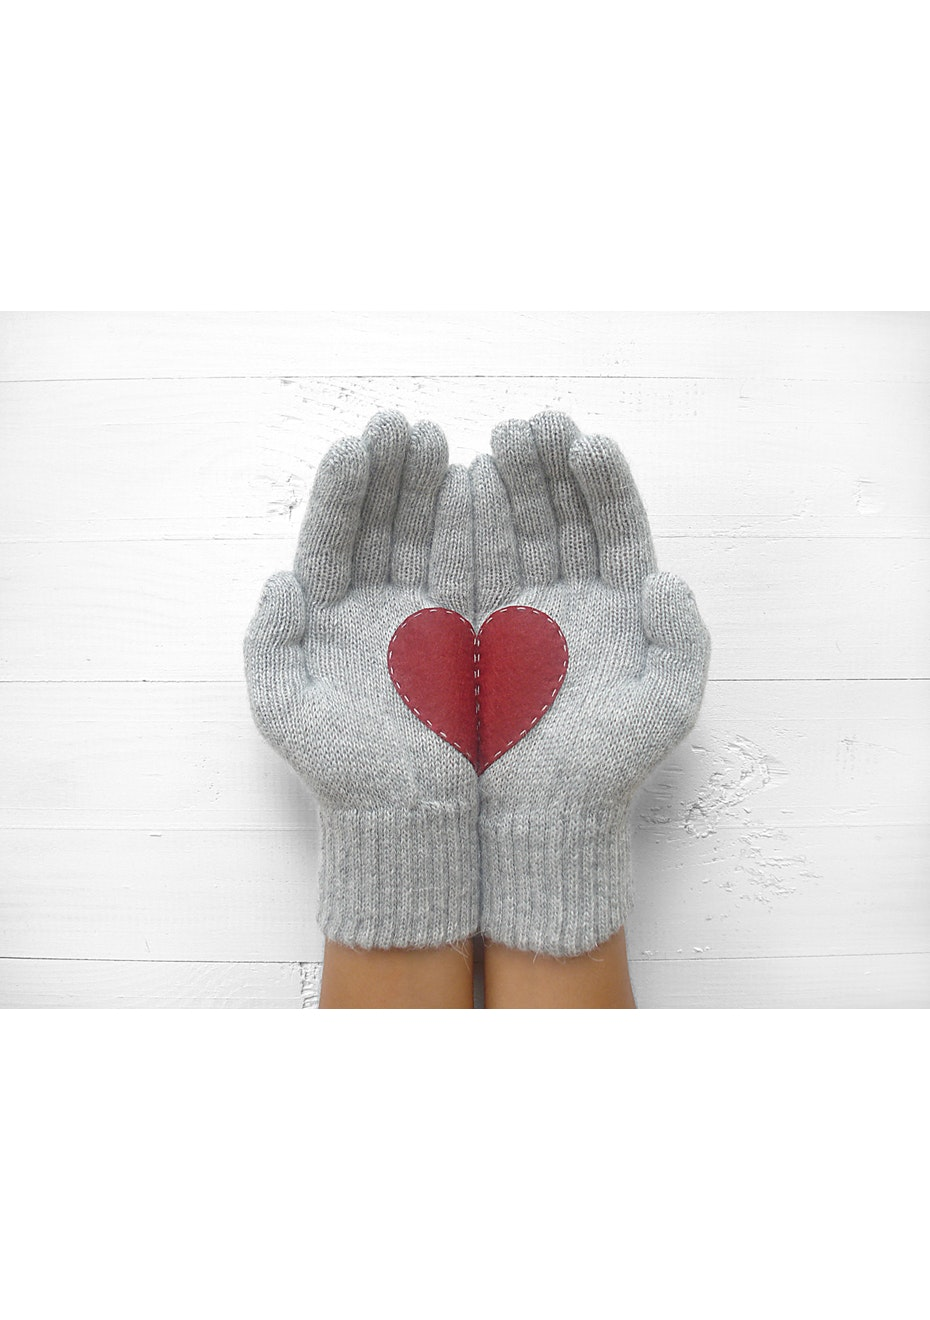 Heart Gloves - Grey/Deep Red